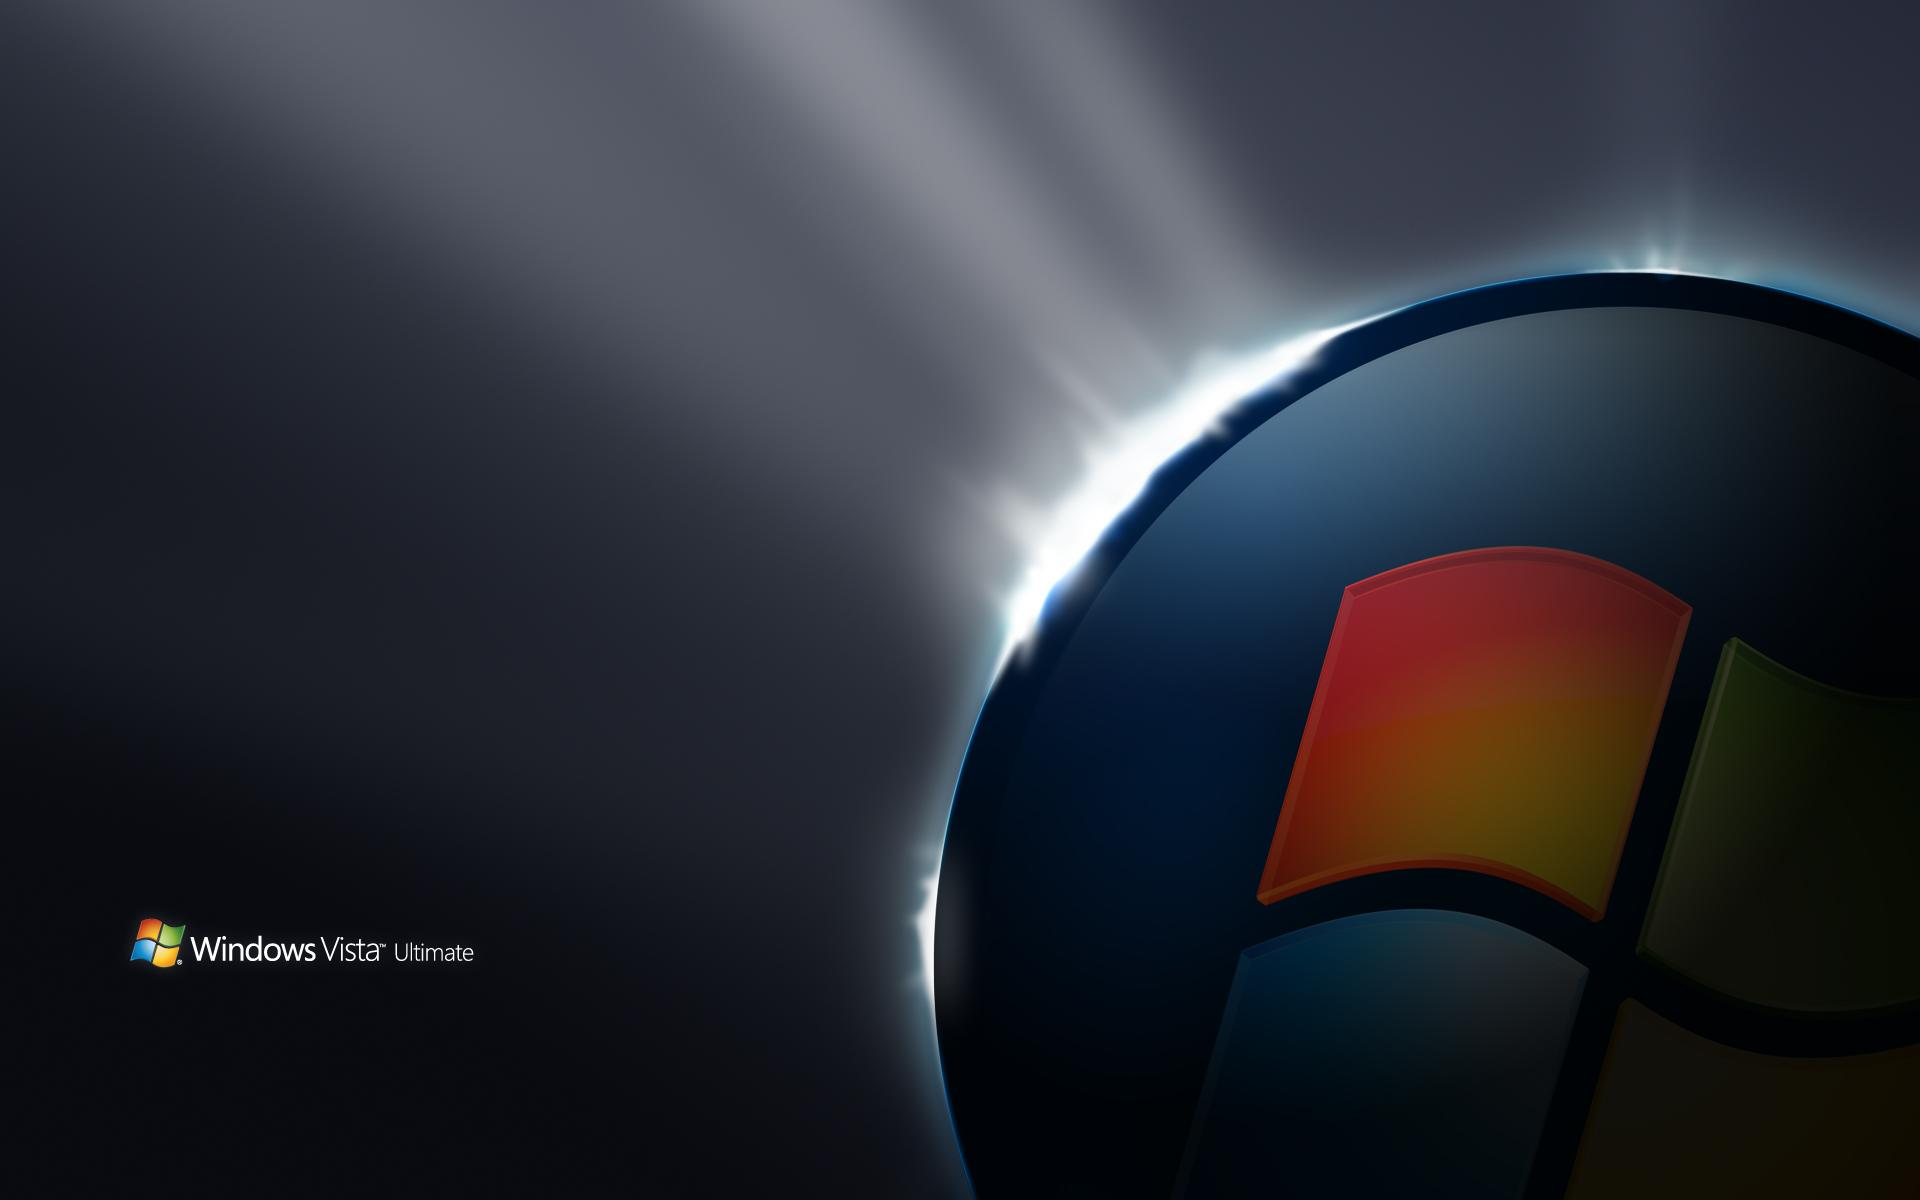 Обои Windows Vista Ultimate 1920x1200